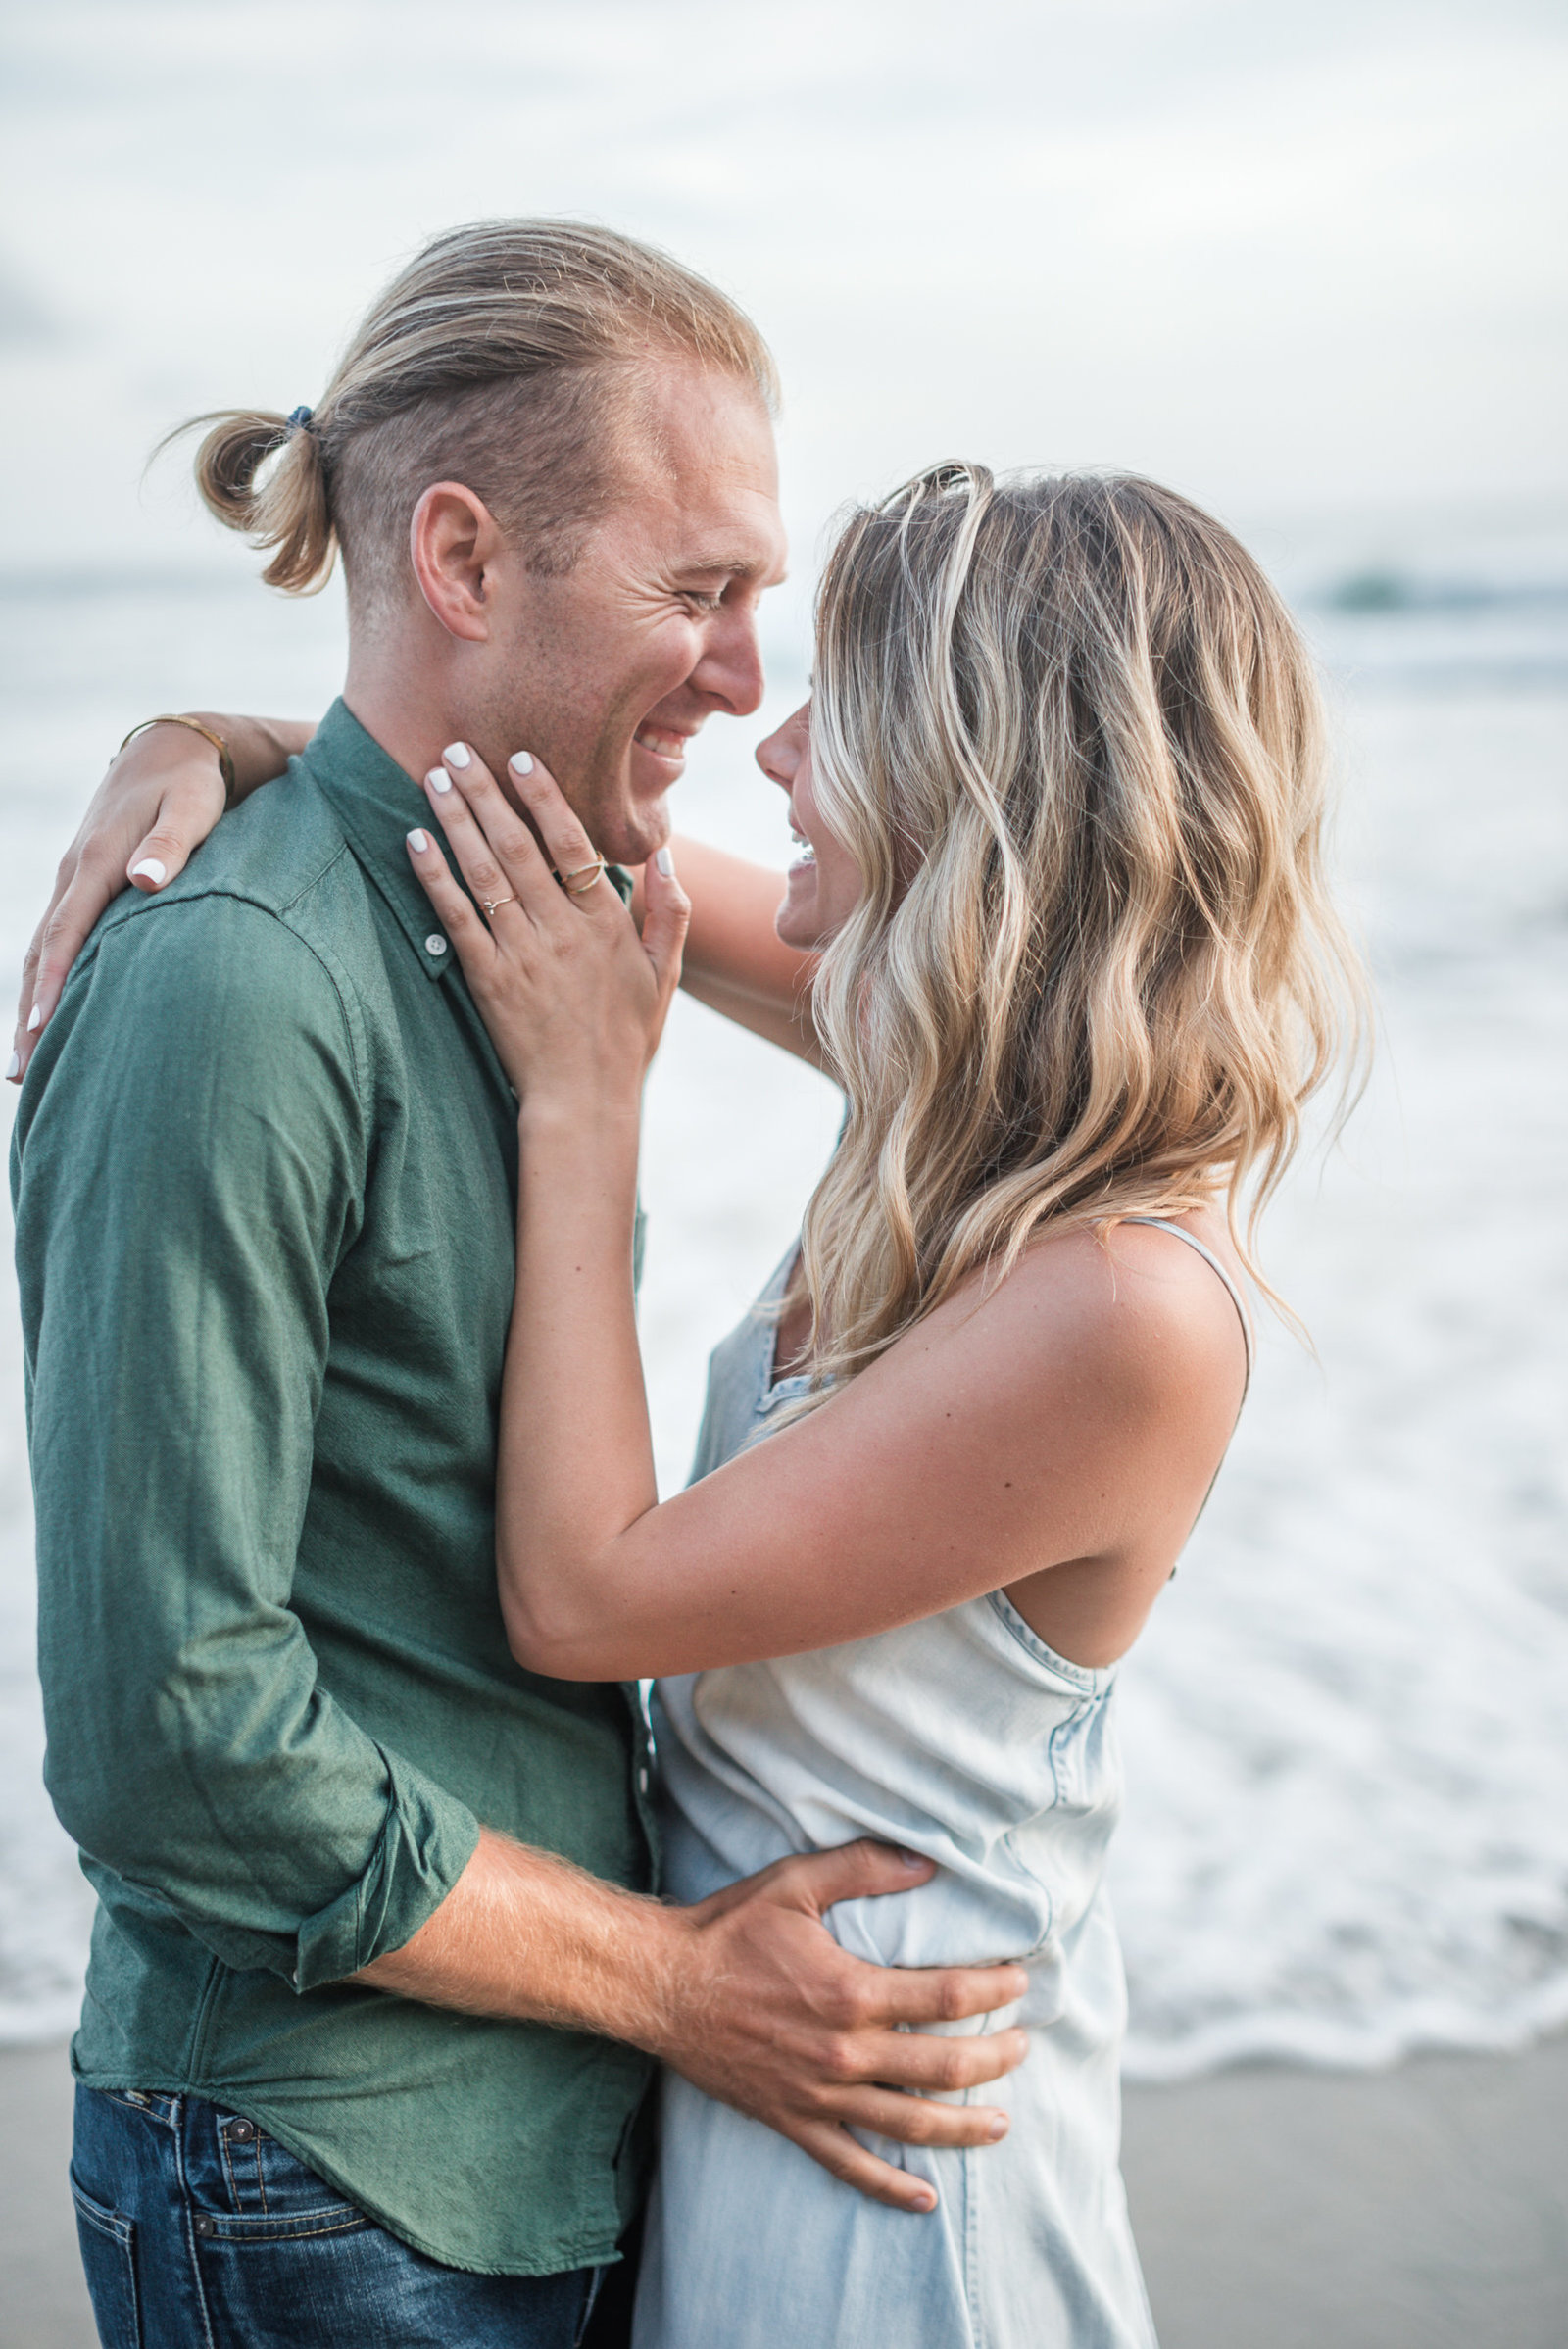 20180221-Pura-Soul-Photo-Encinitas-Engagement-Shoot-40